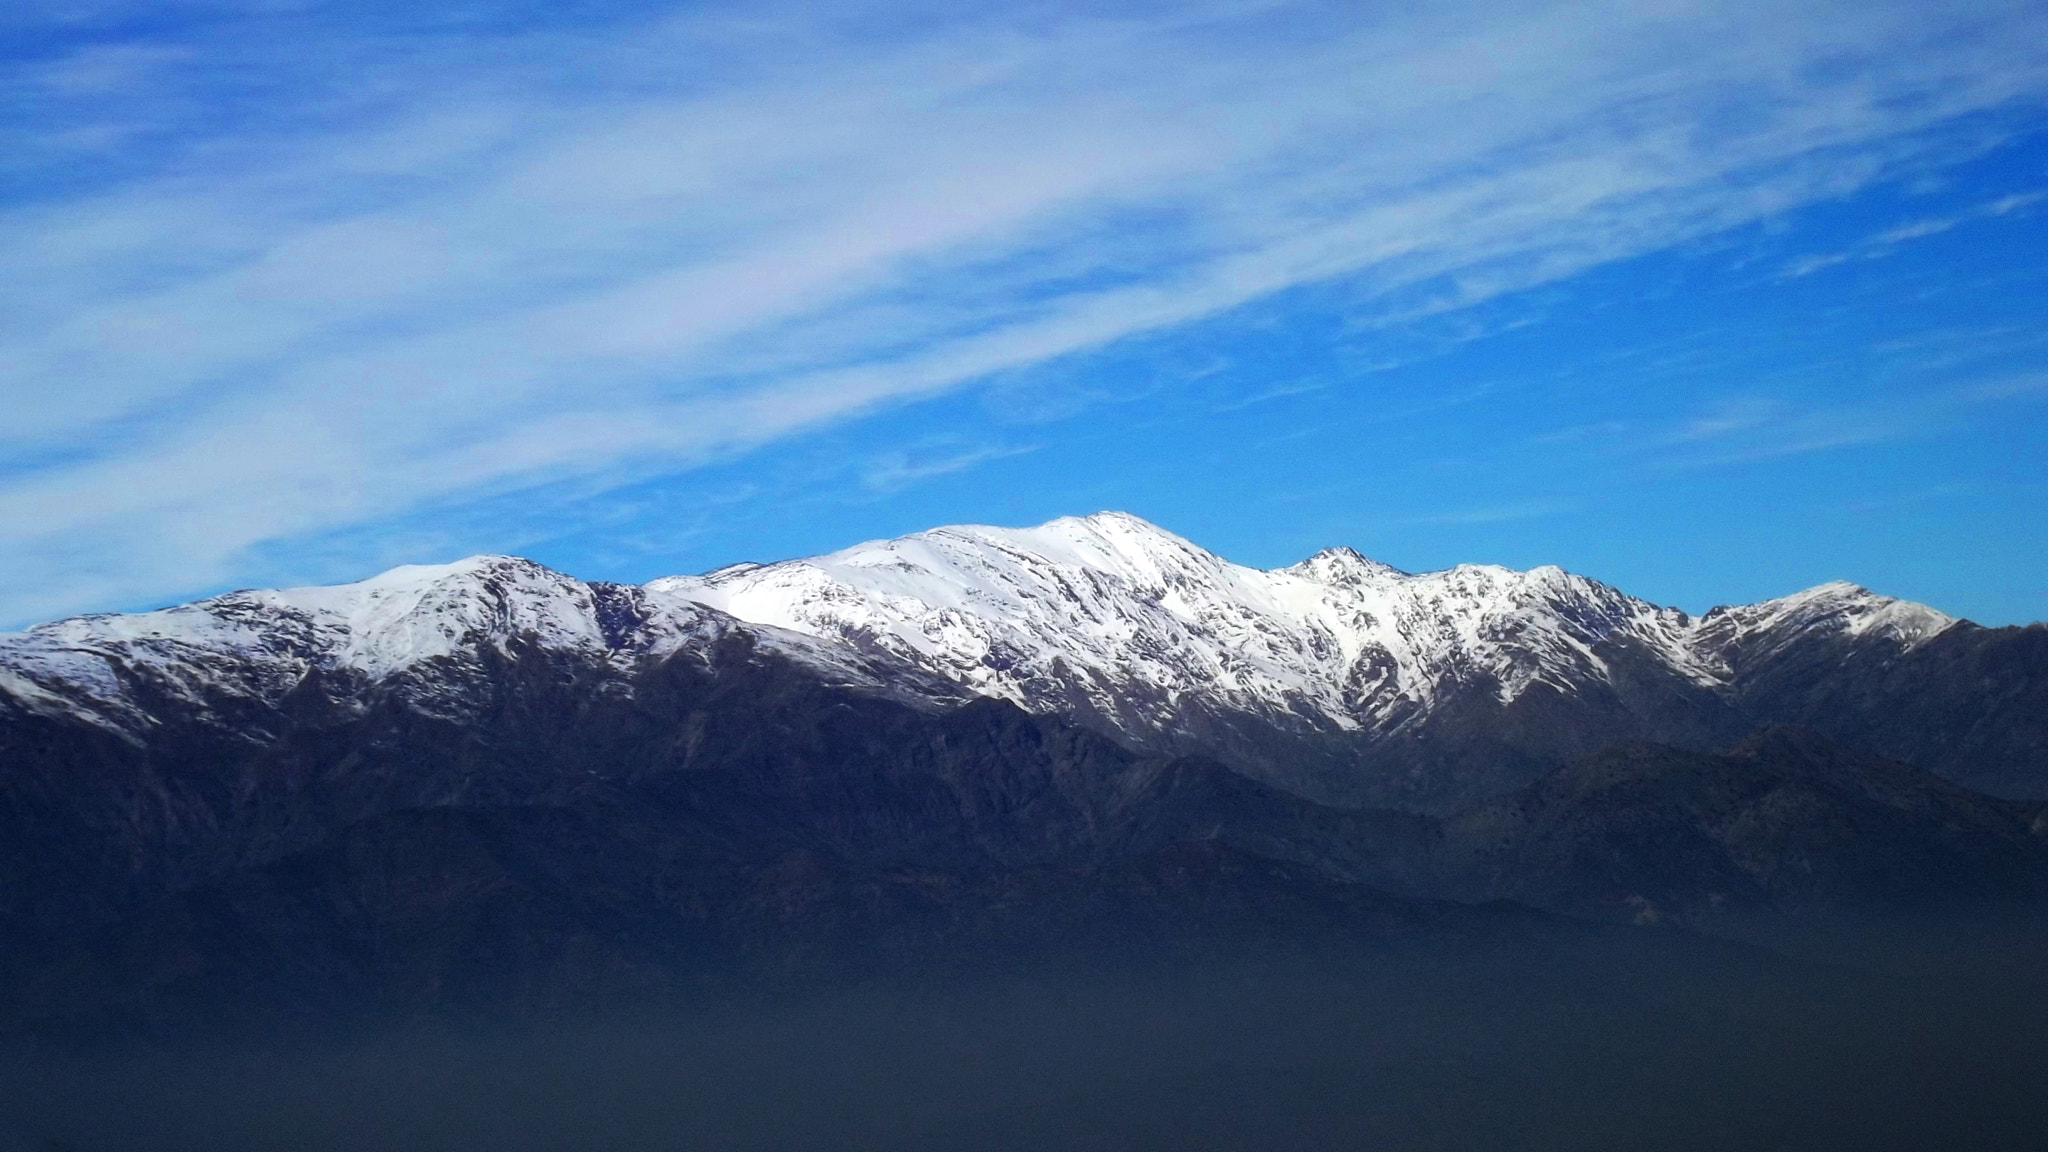 Photograph Cordillera majestuosa! by andres vejar on 500px